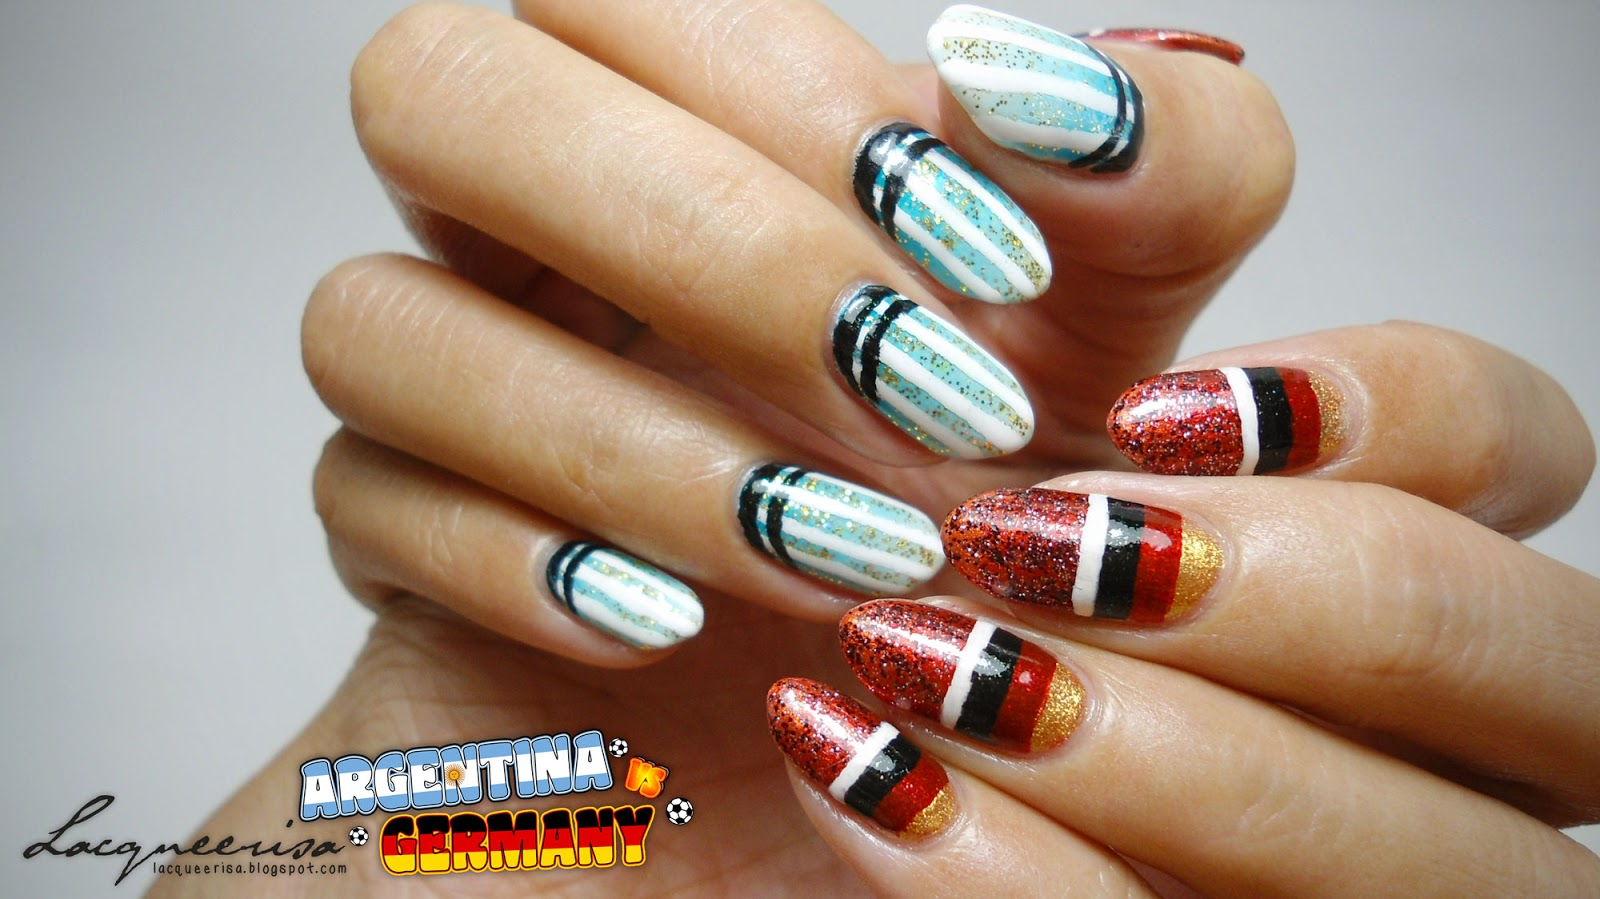 Argentina vs Germany Nails lacqueerisa.blogspot.com